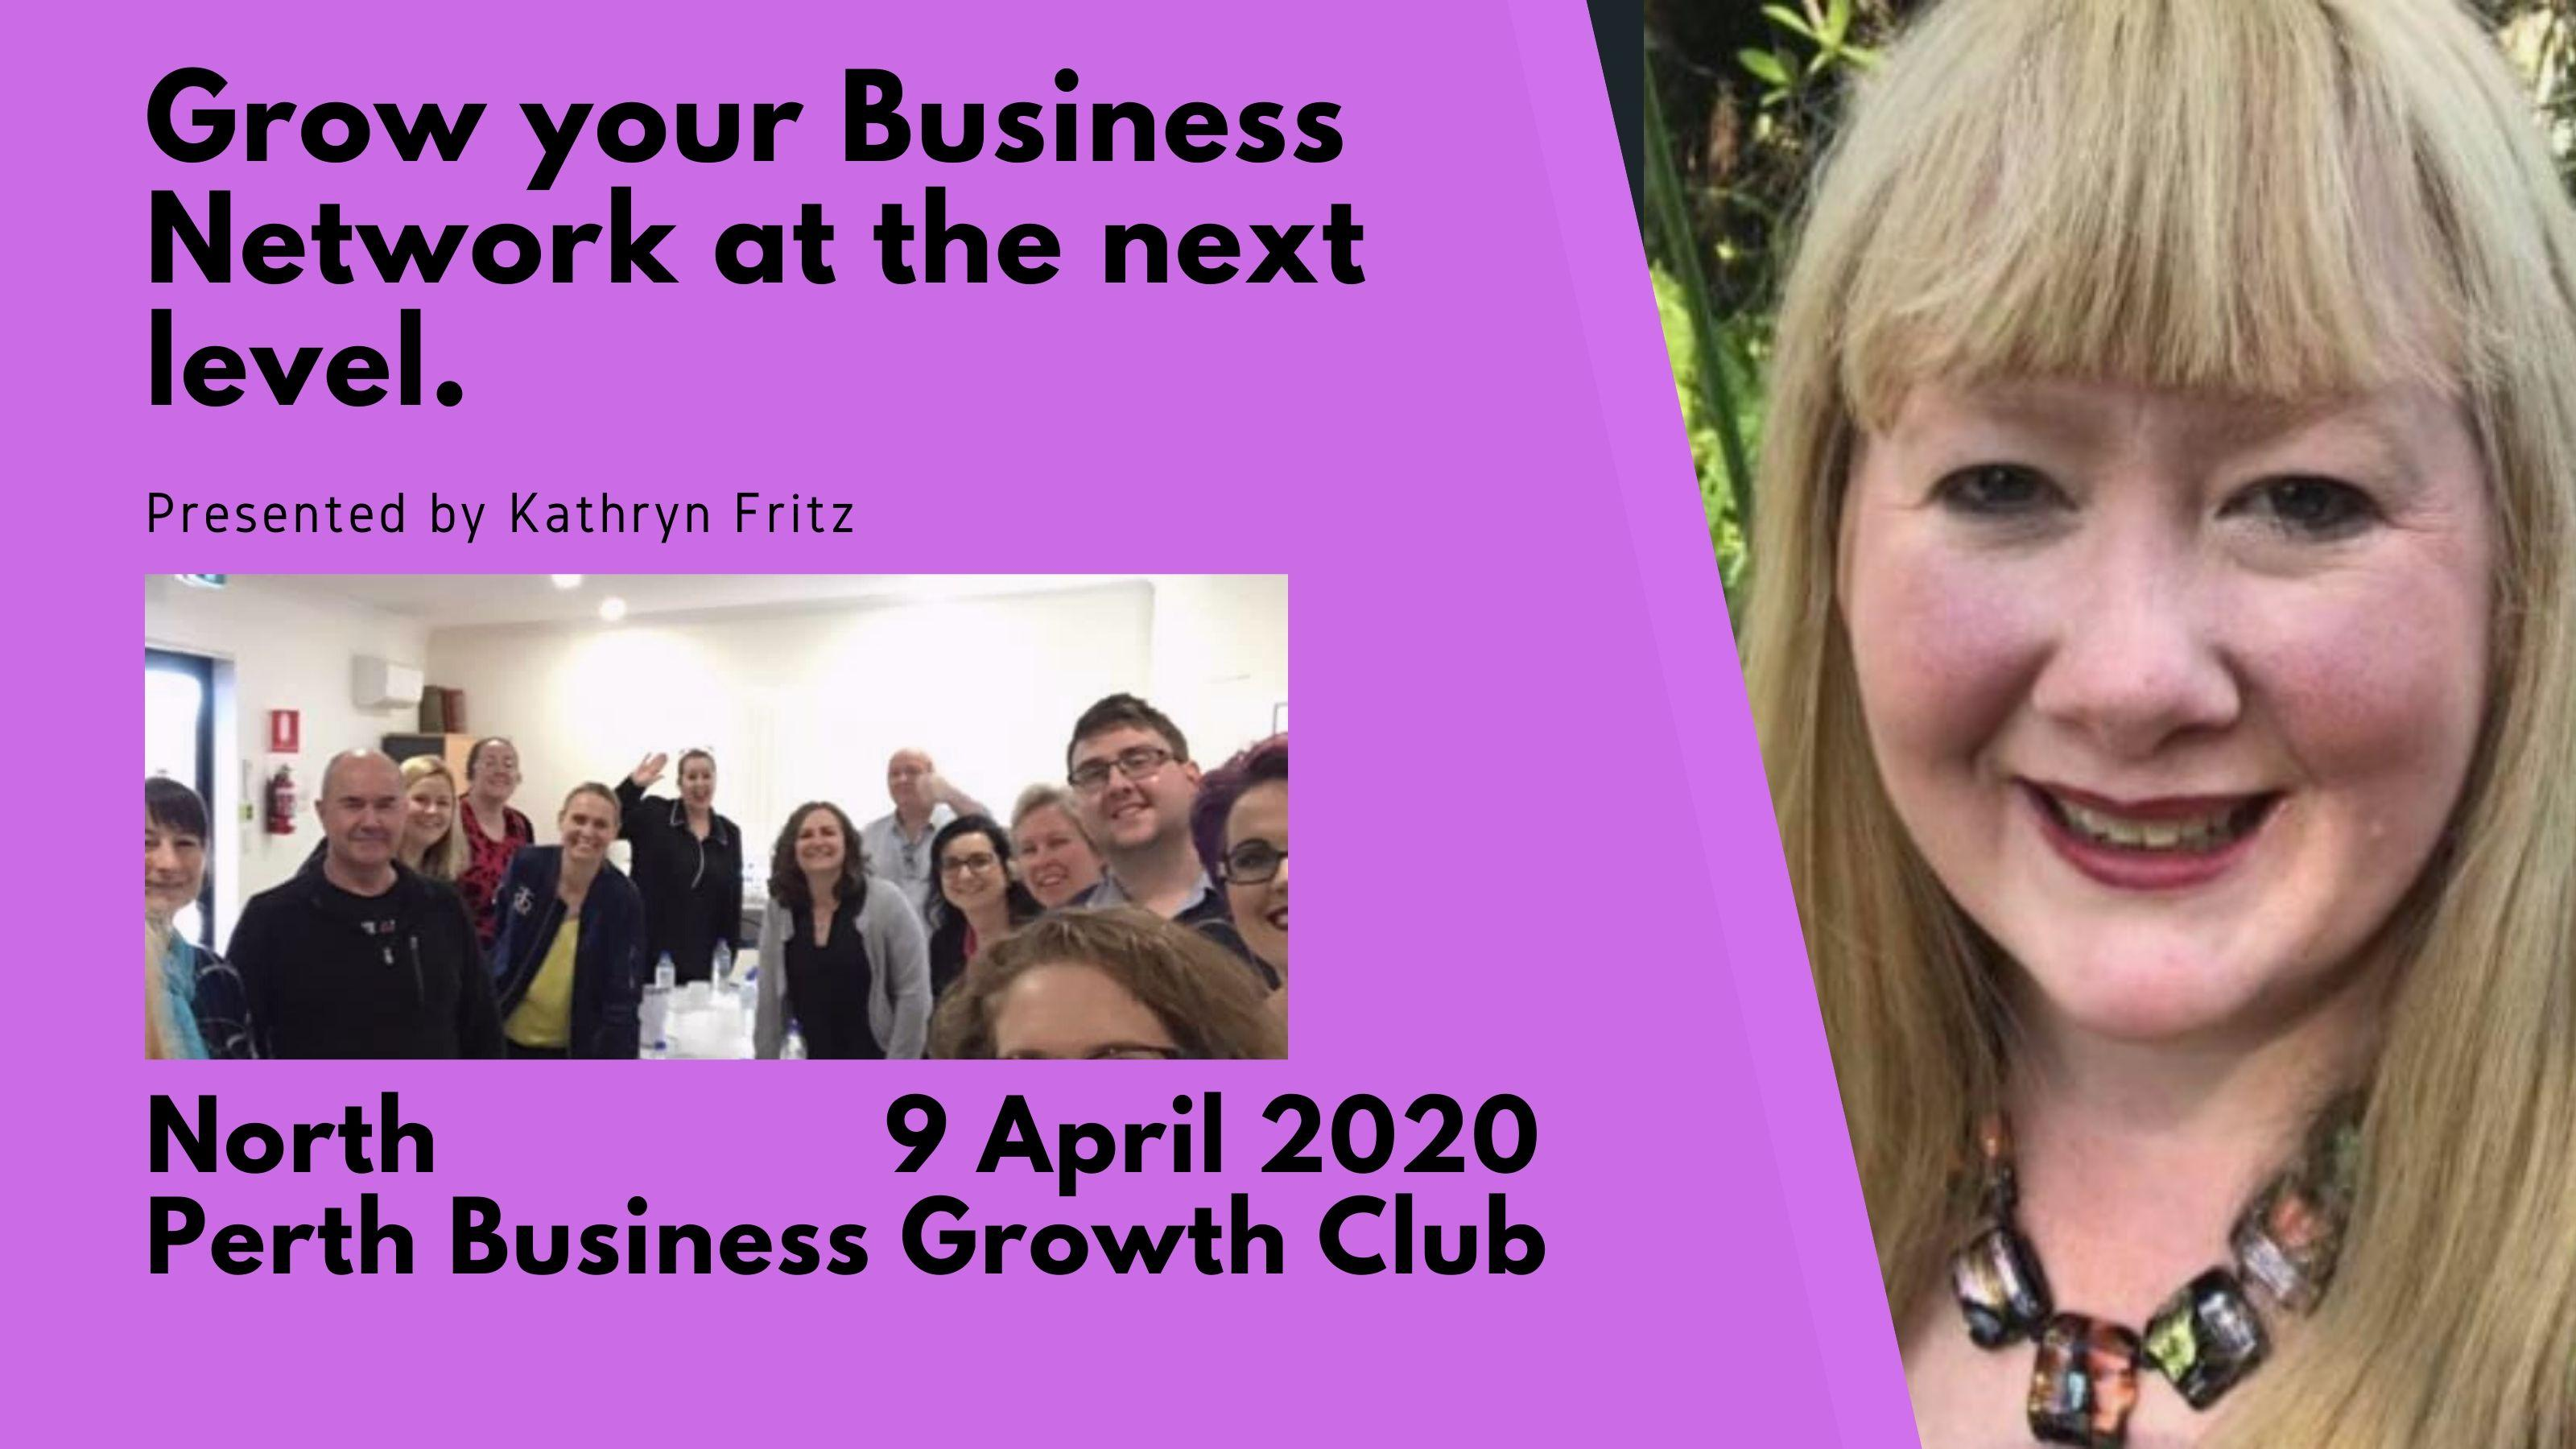 Grow Your Business Network at the Next Level